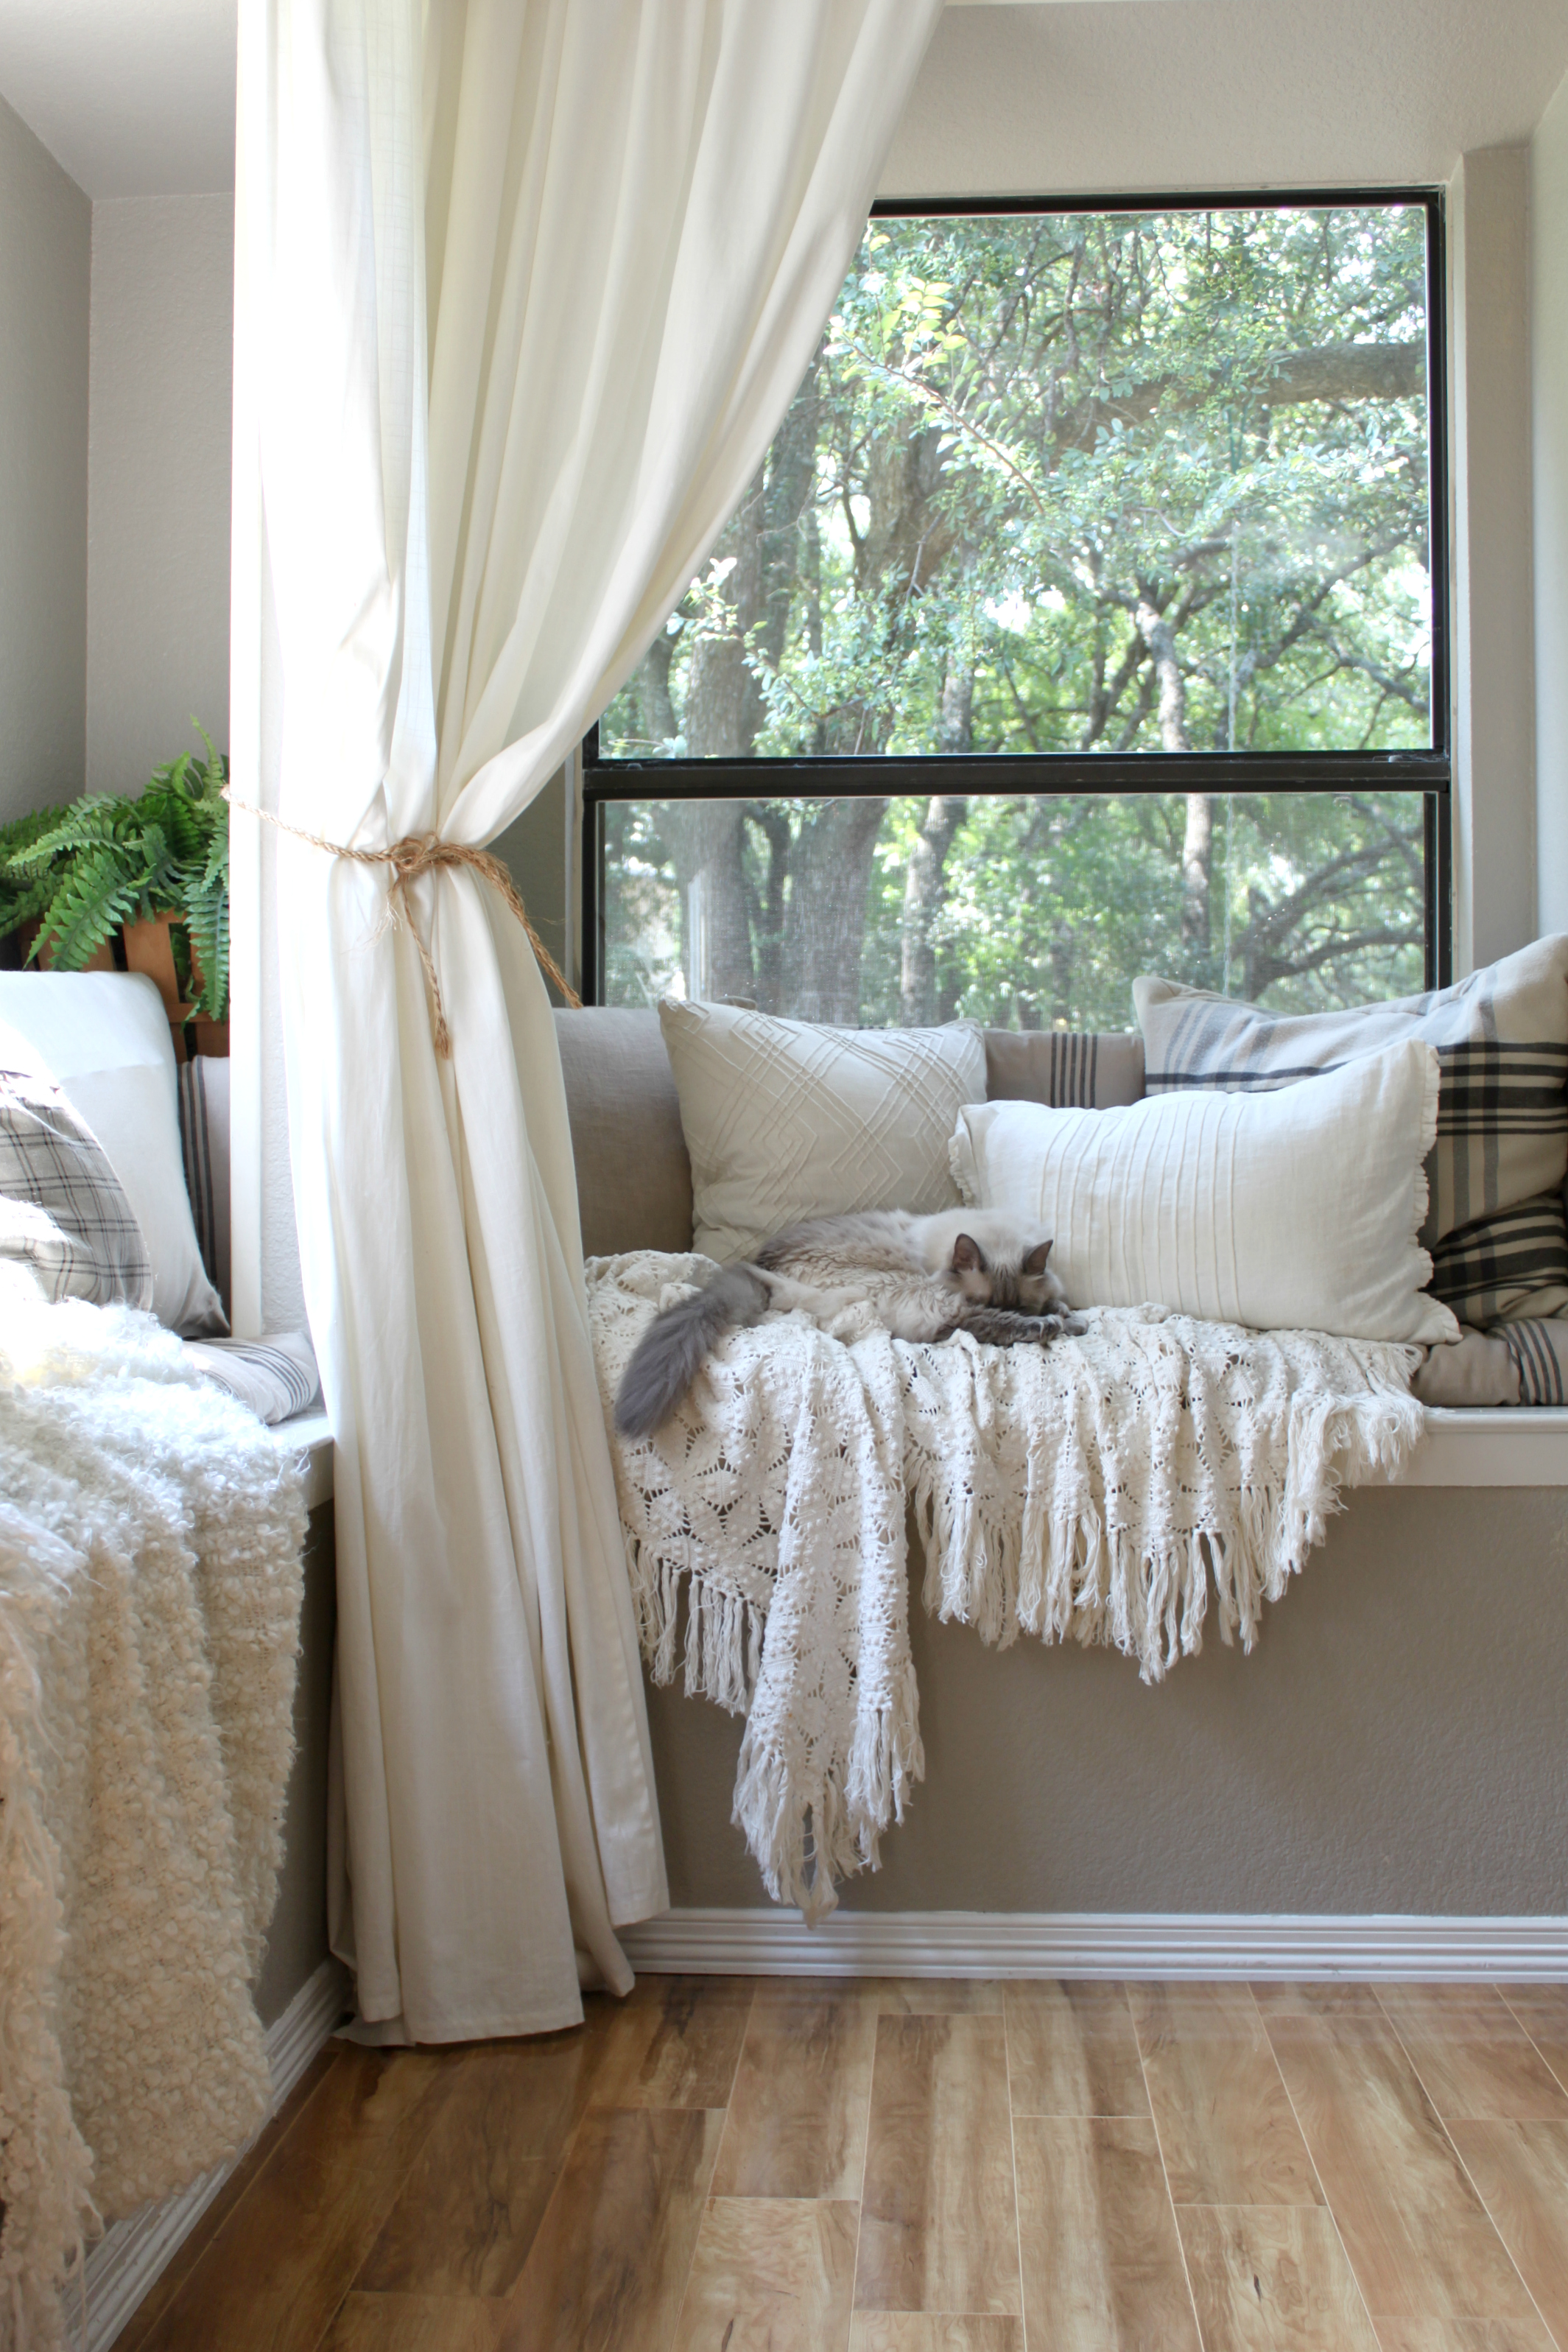 kitchen-nook-pillows-curtains-ikea